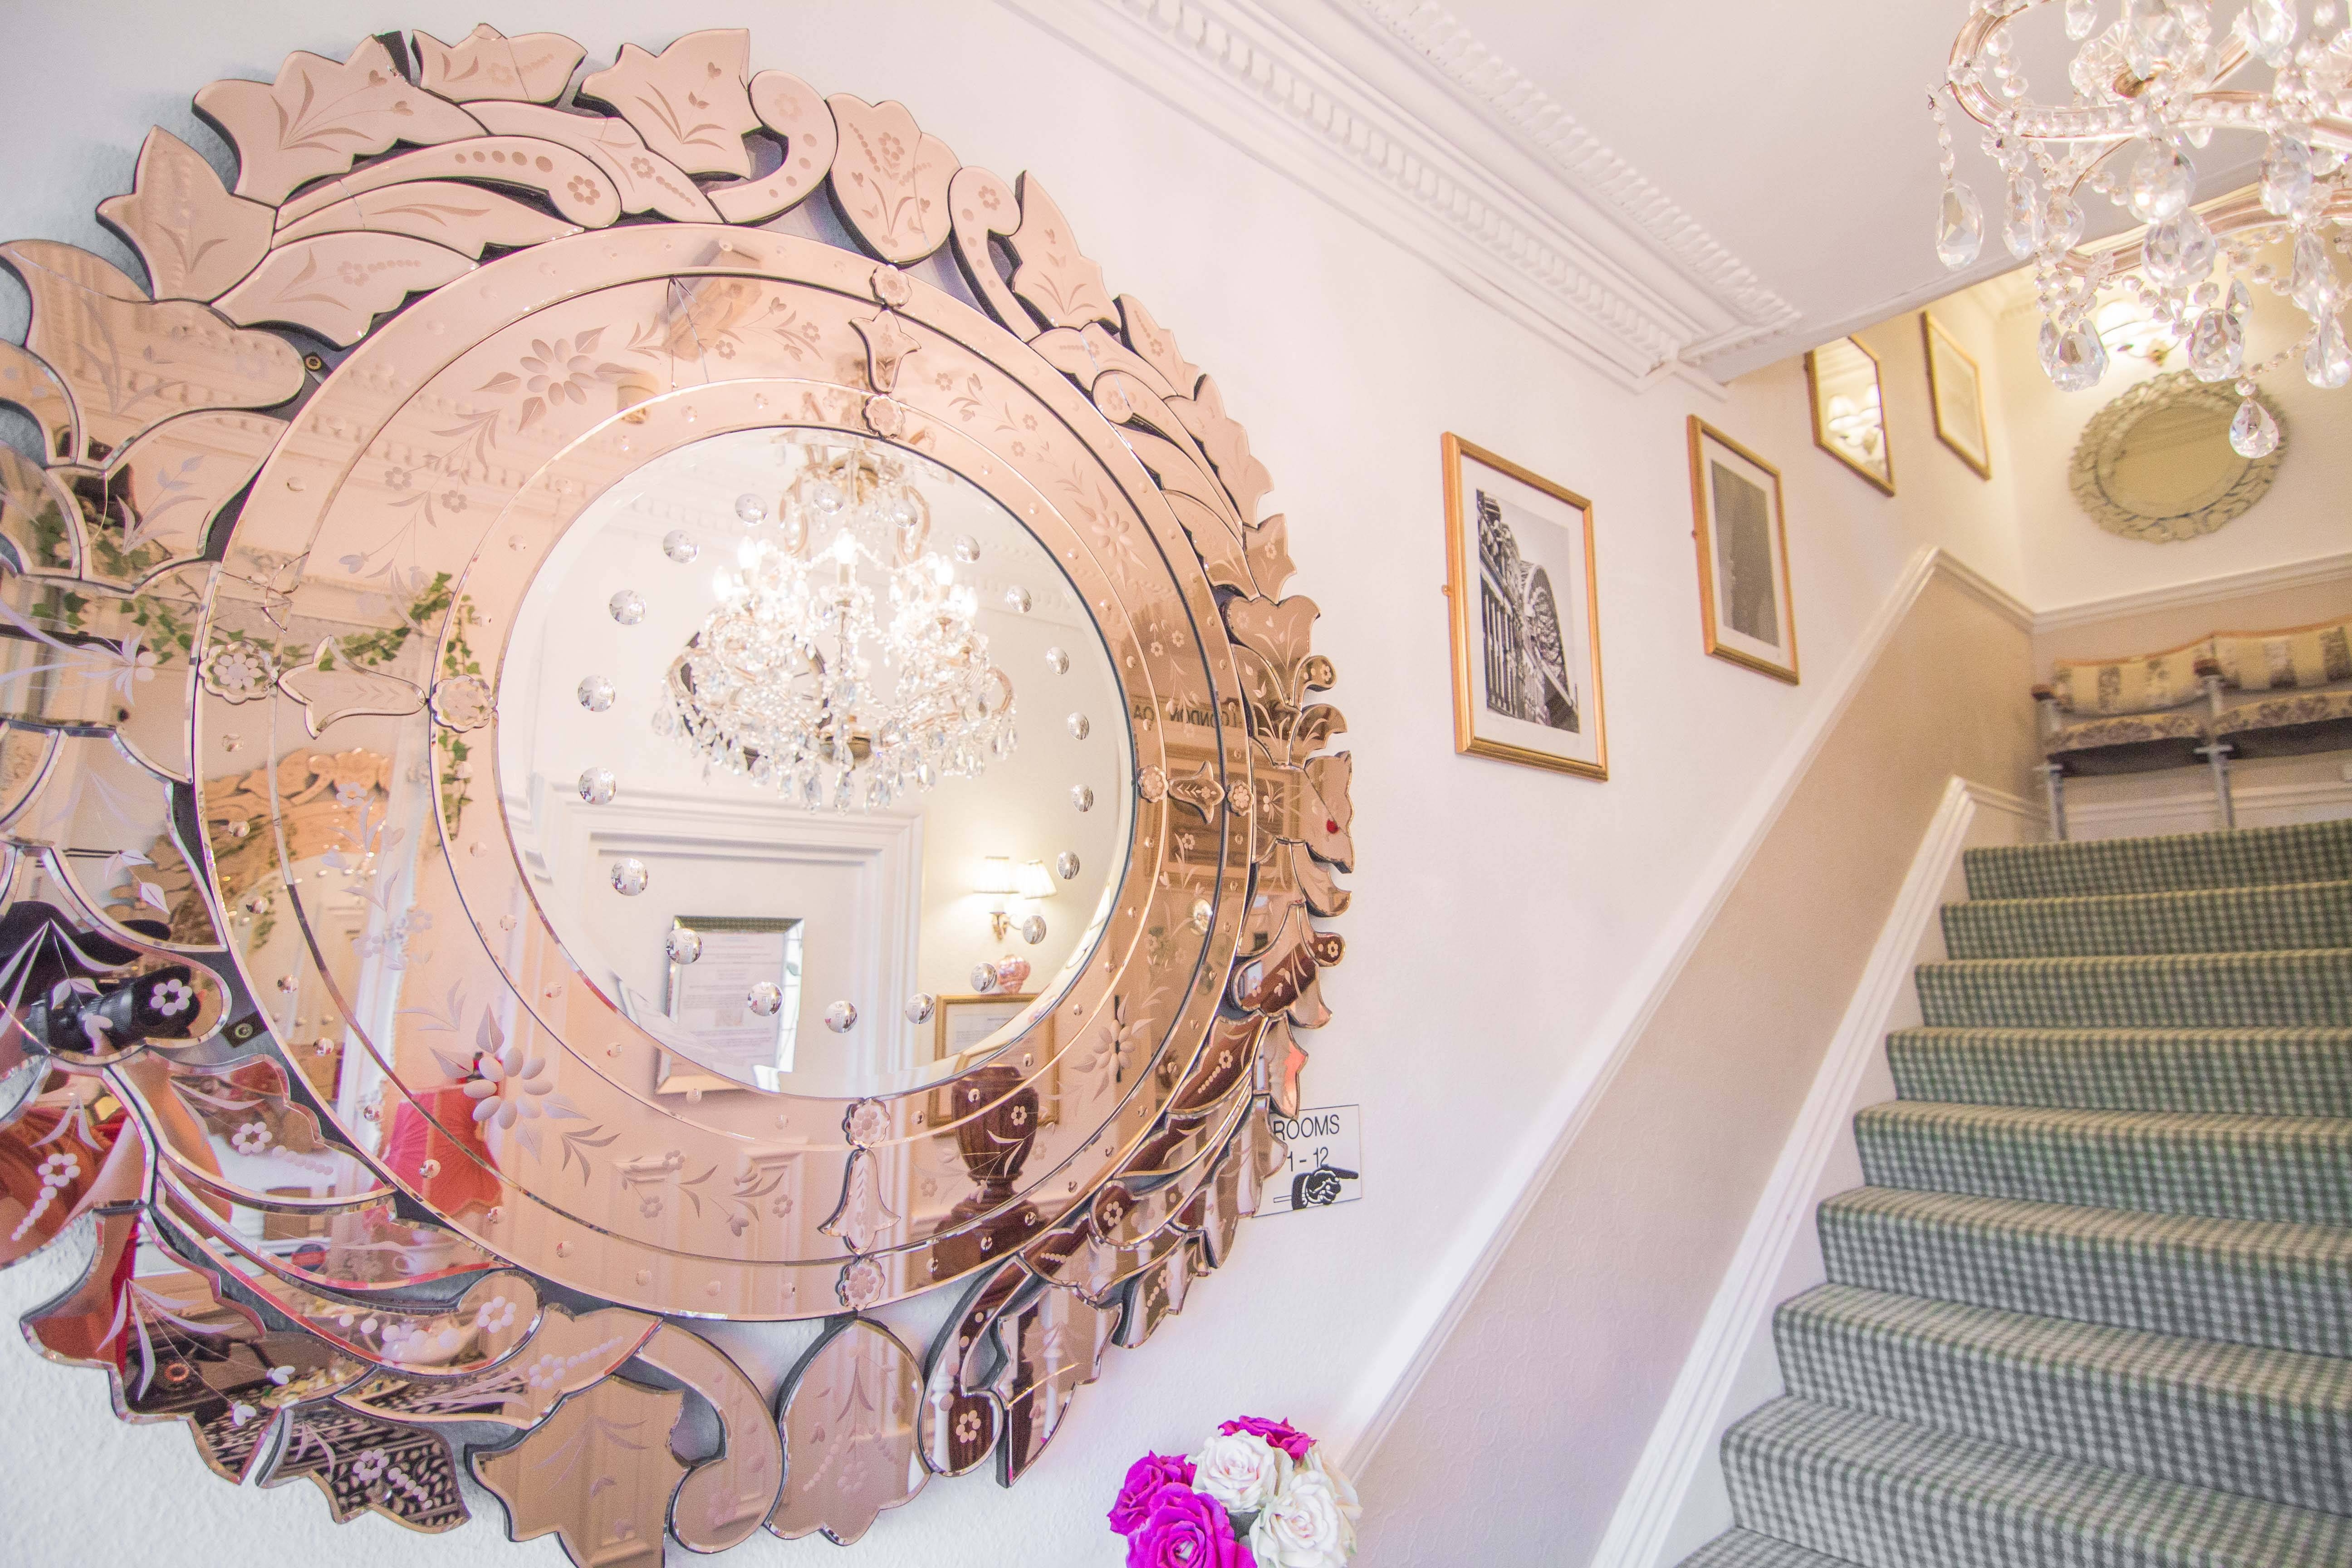 Fabulous Mirrors In Our Boutique Hotel Newcastle - The Rosebery with regard to Unusual Large Mirrors (Image 21 of 25)